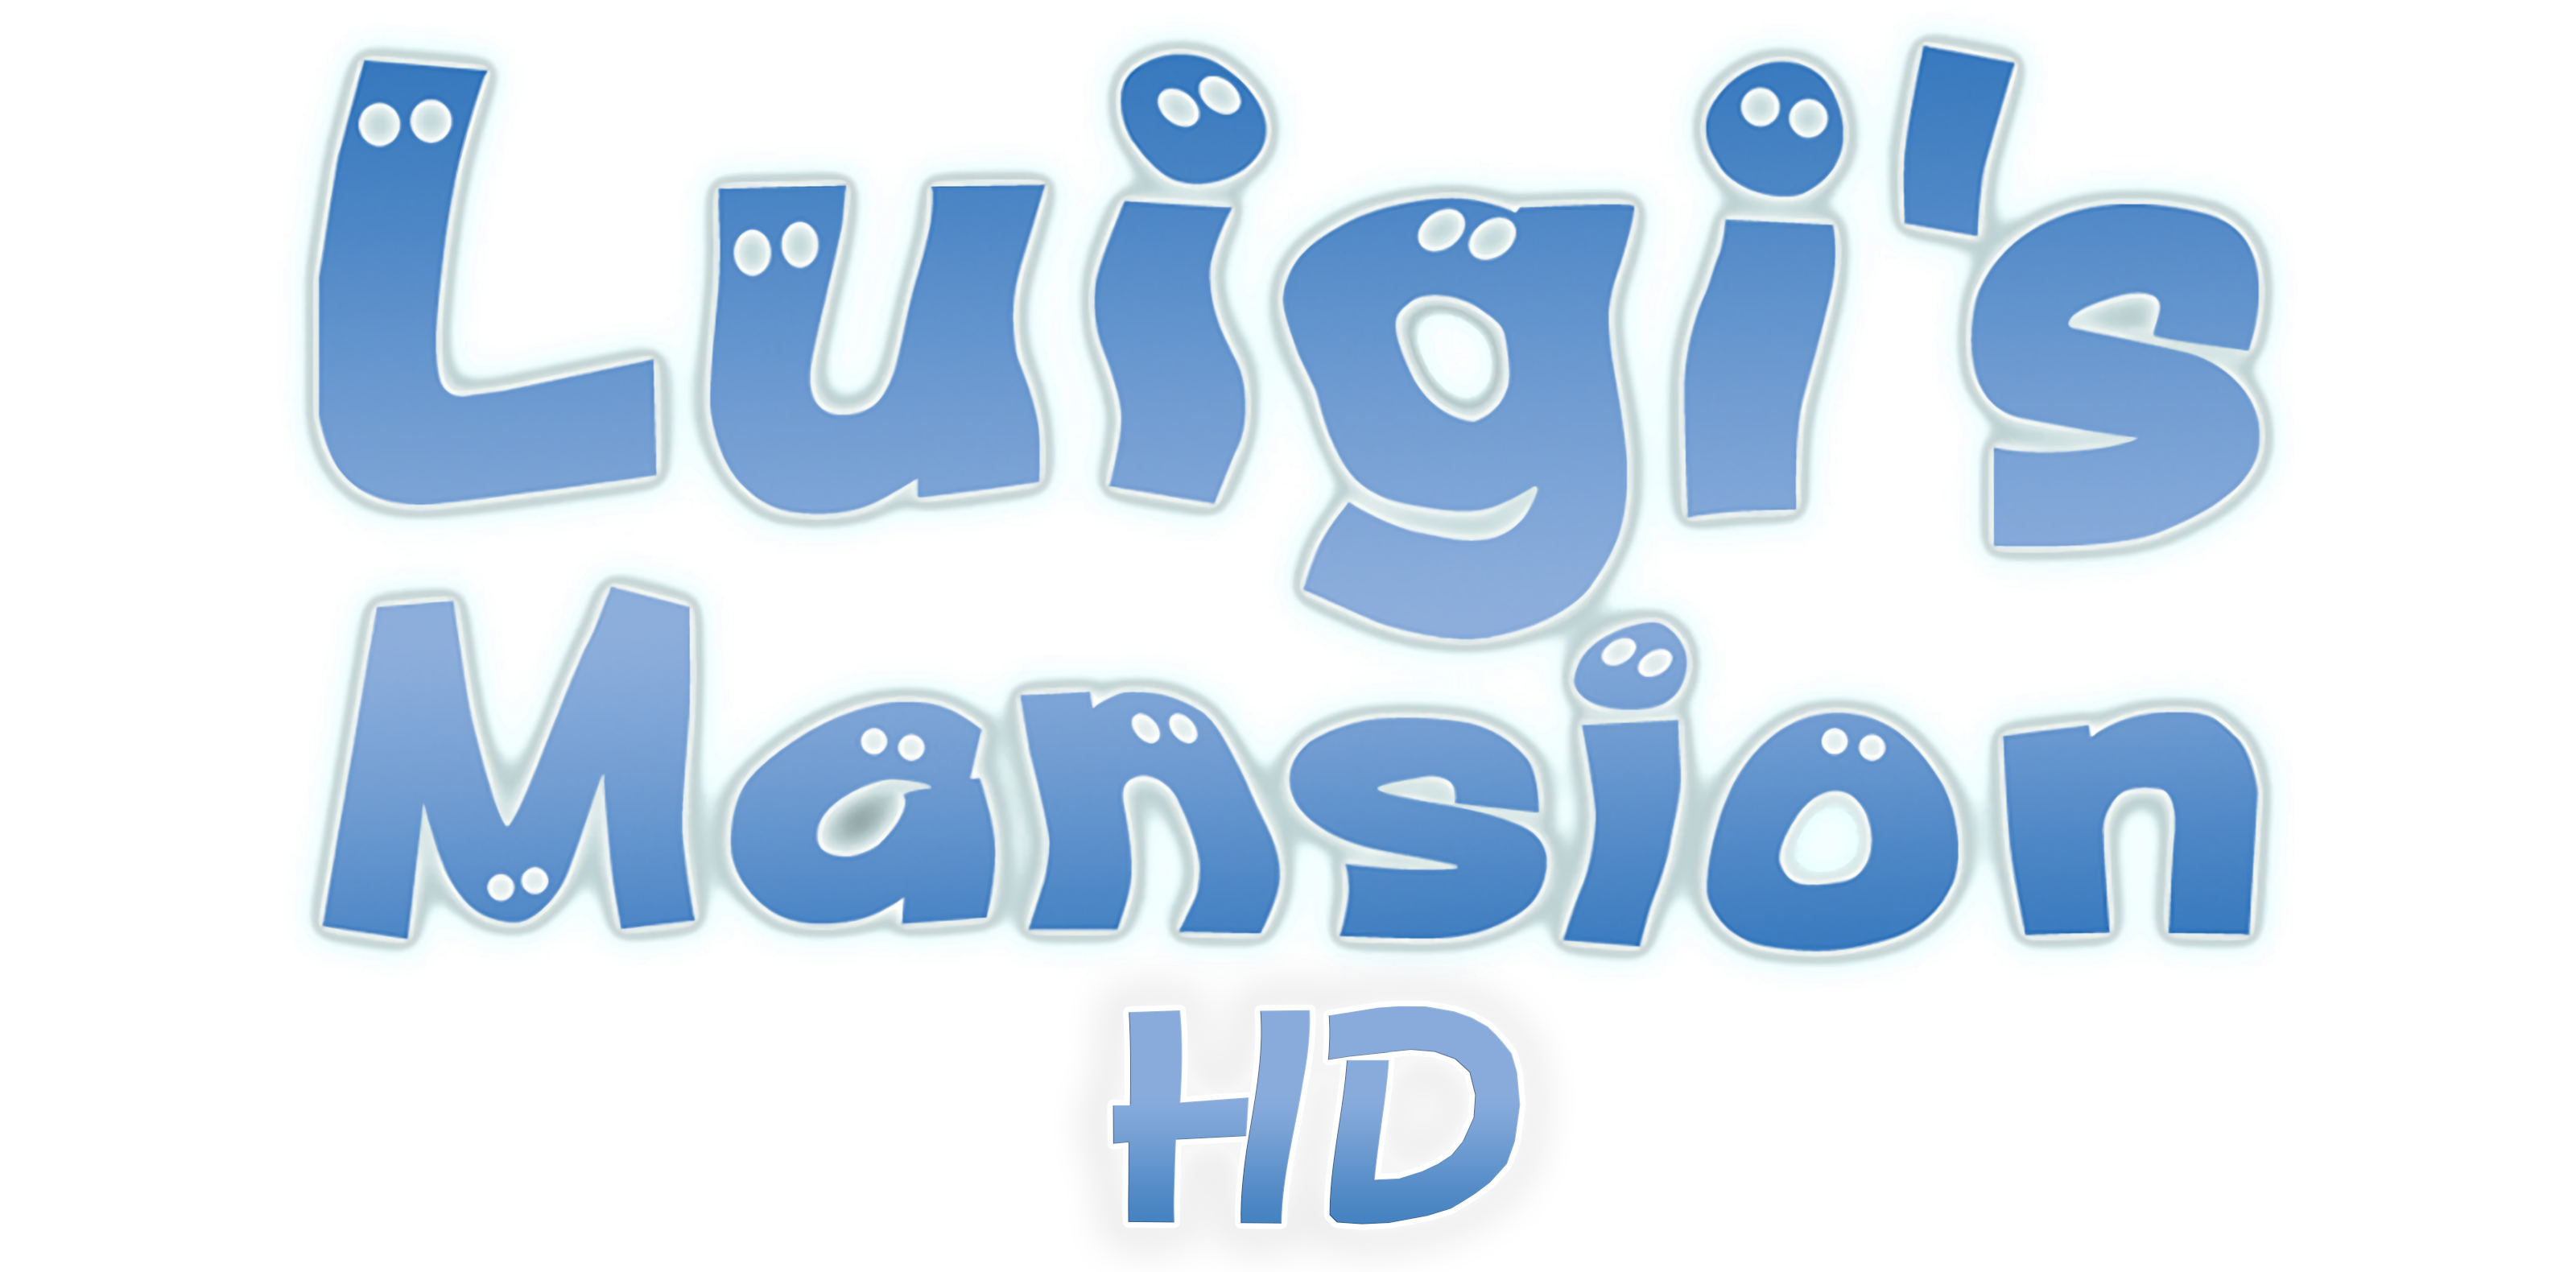 Dds vs png dolphin. Luigi s mansion hd